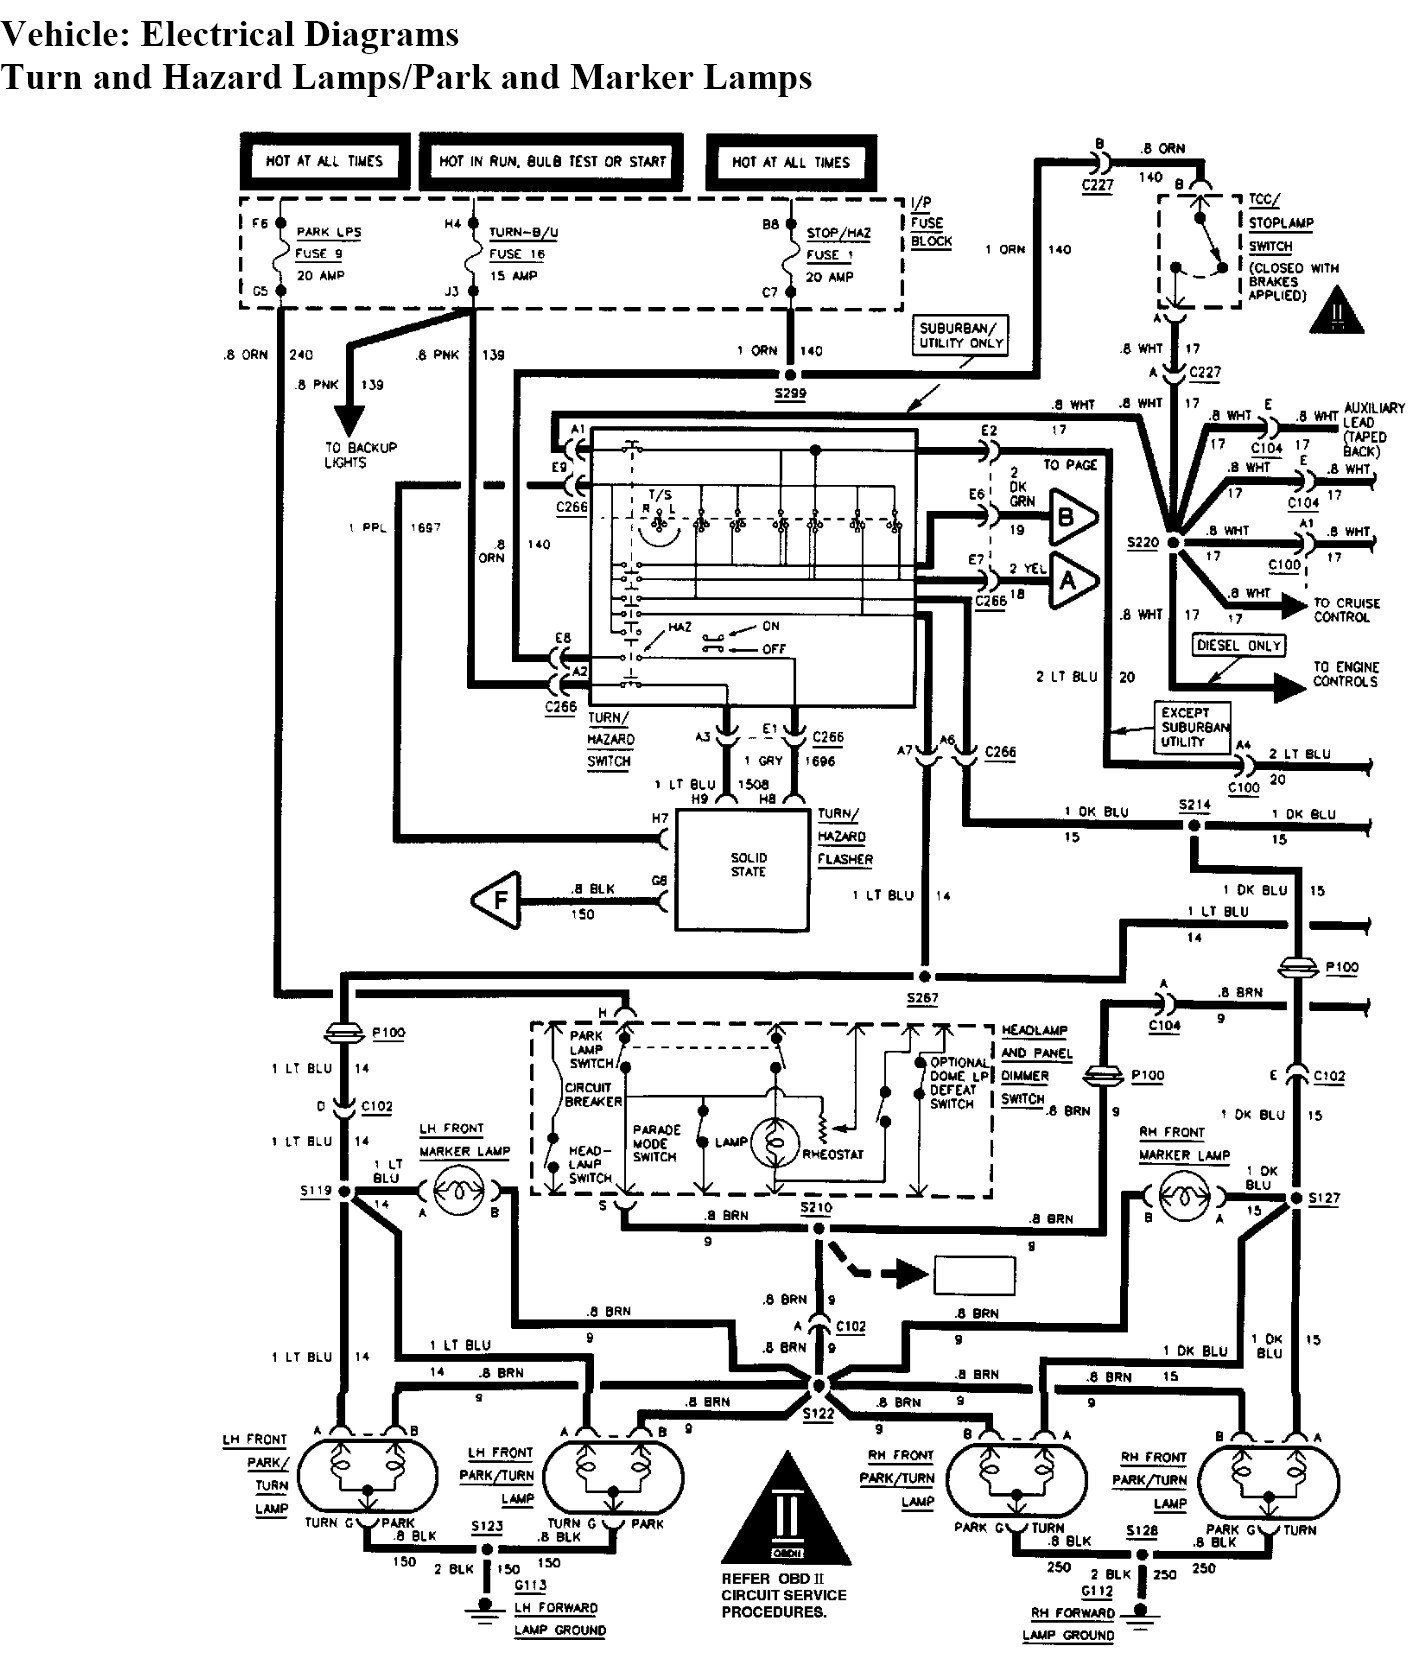 2004 Mustang Brake Light Wiring Diagram Schematics Diagrams Harness Radio Trusted Rh Dafpods Co Stereo